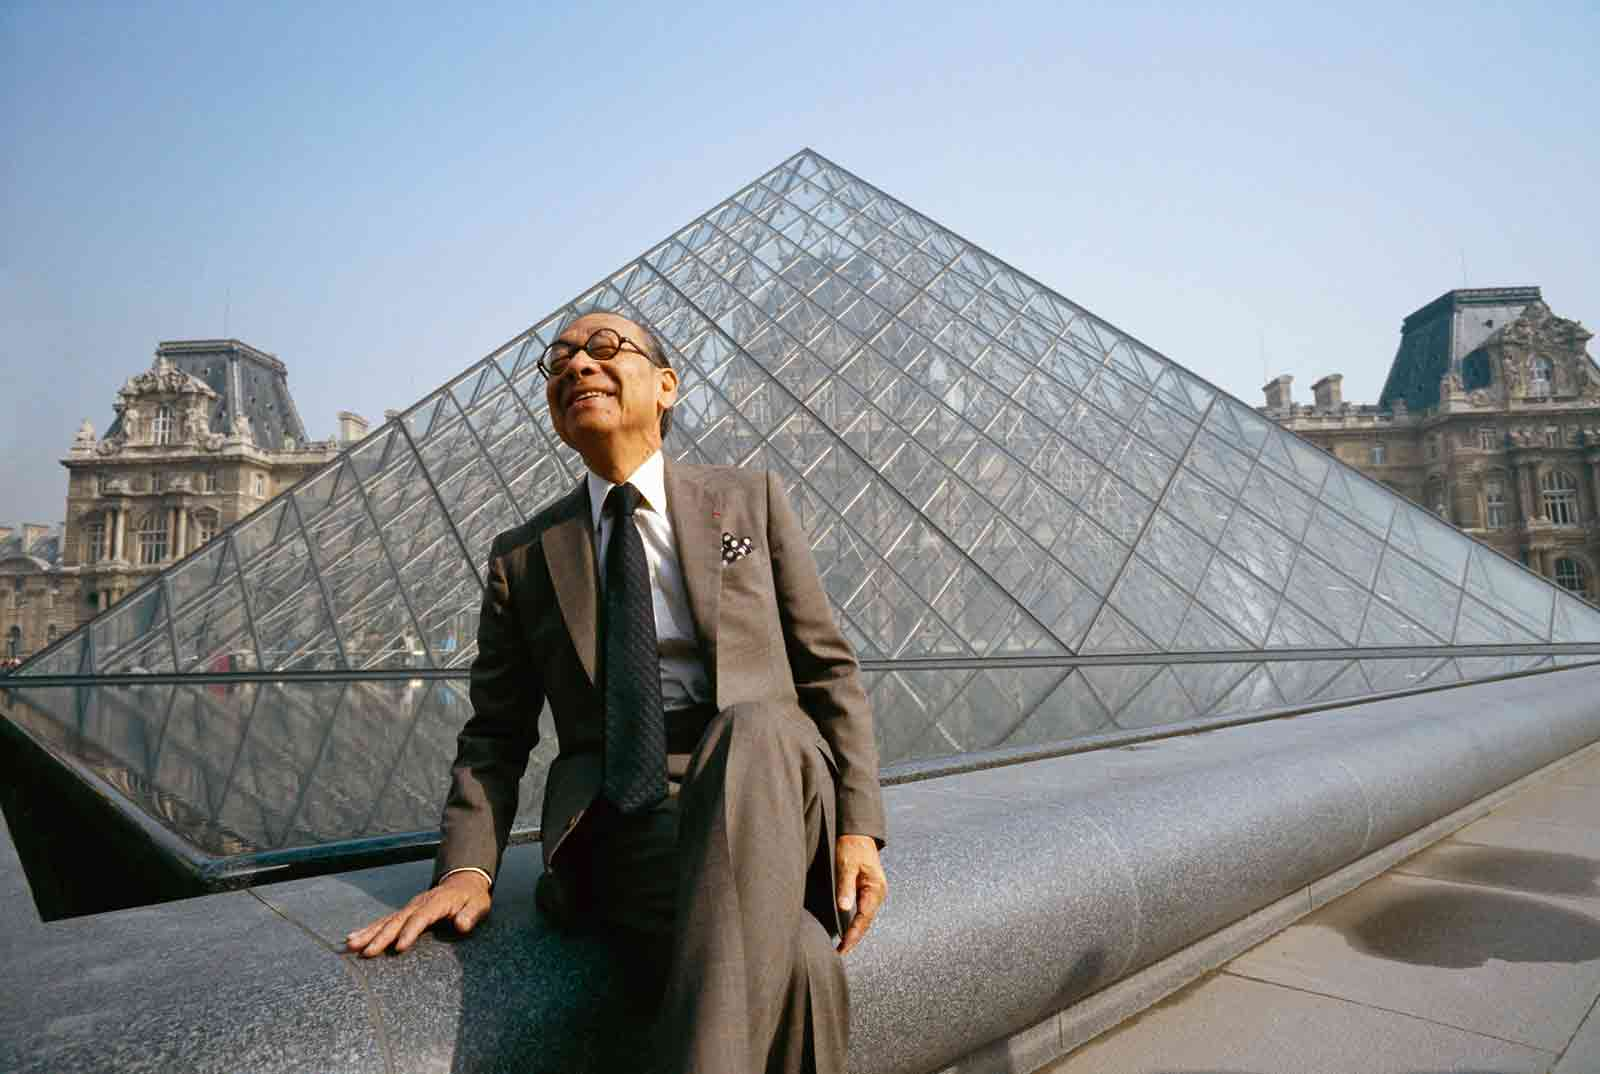 Architect I.M. Pei near his Pyramid Entrance at the Louvre Museum, at its opening, Paris, March 29, 1989